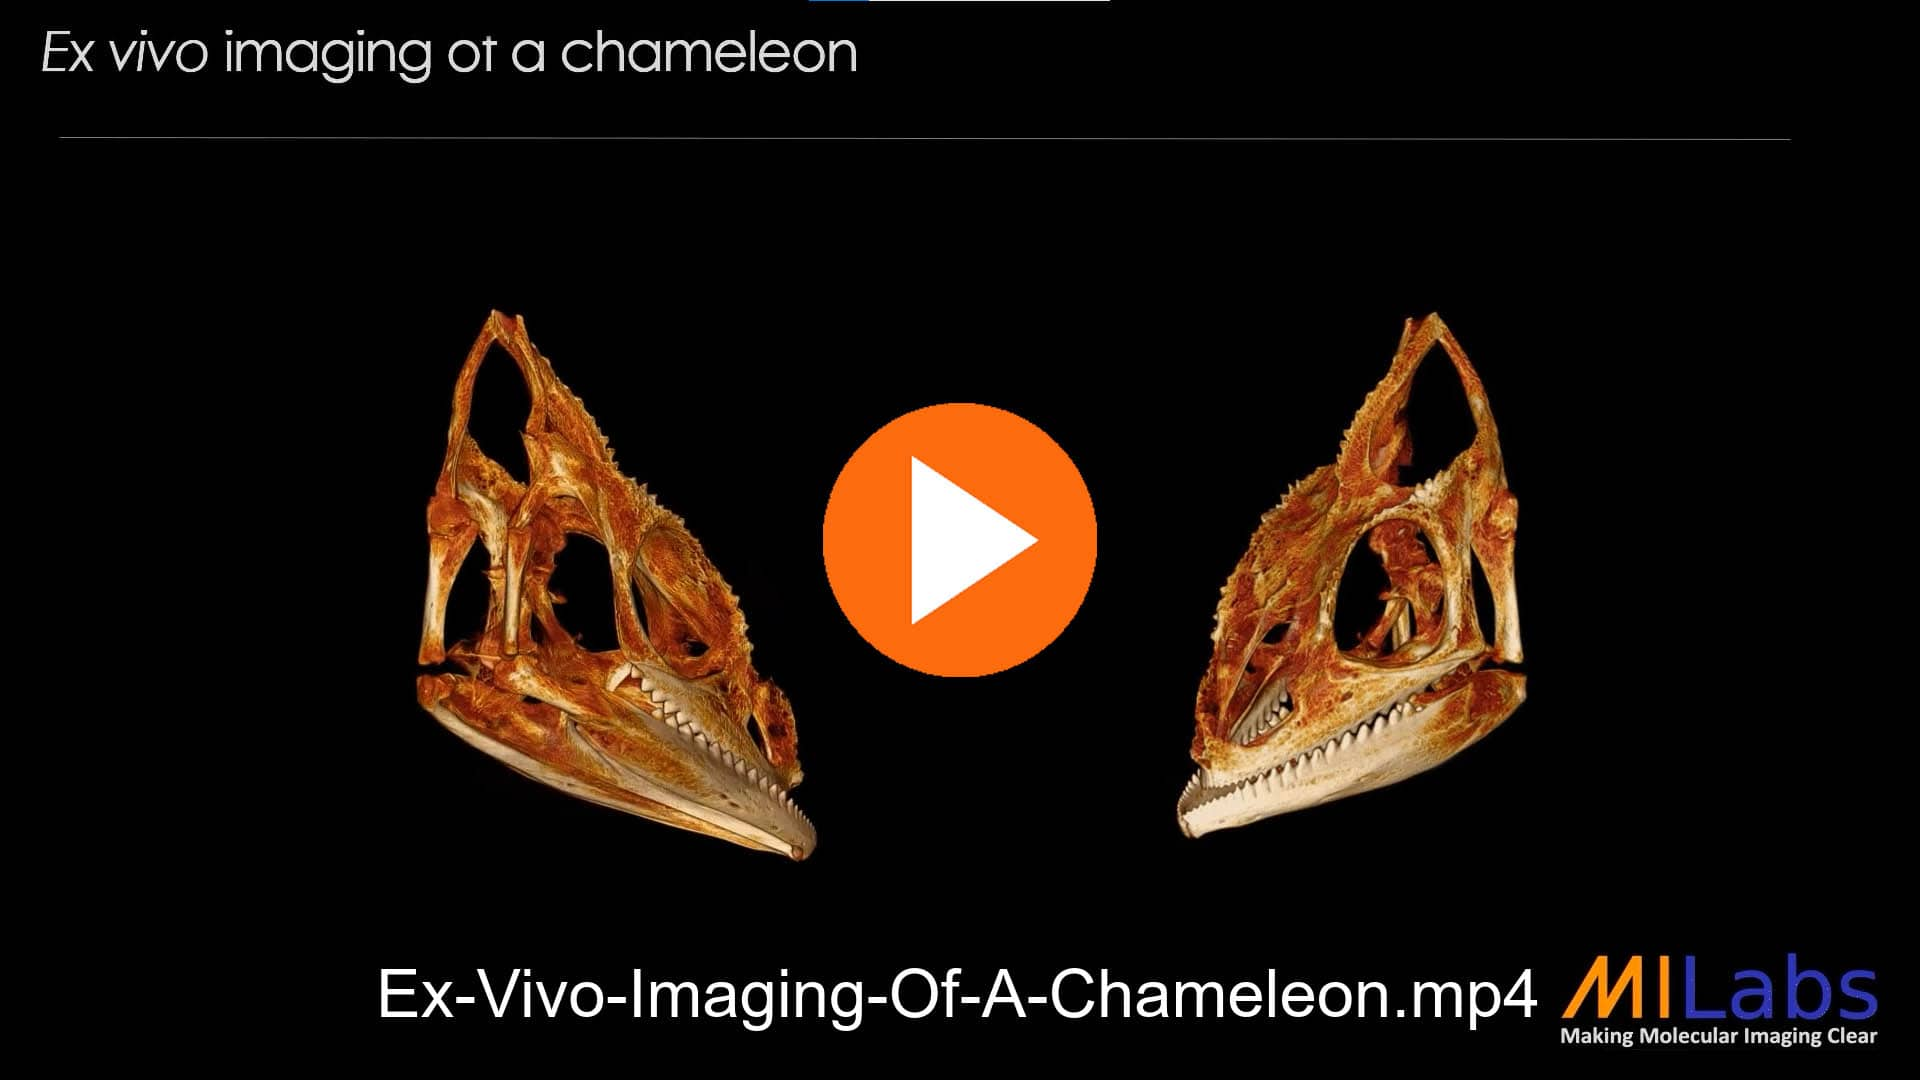 exvivo imaging of a chameleon with microCT for zoology purposes